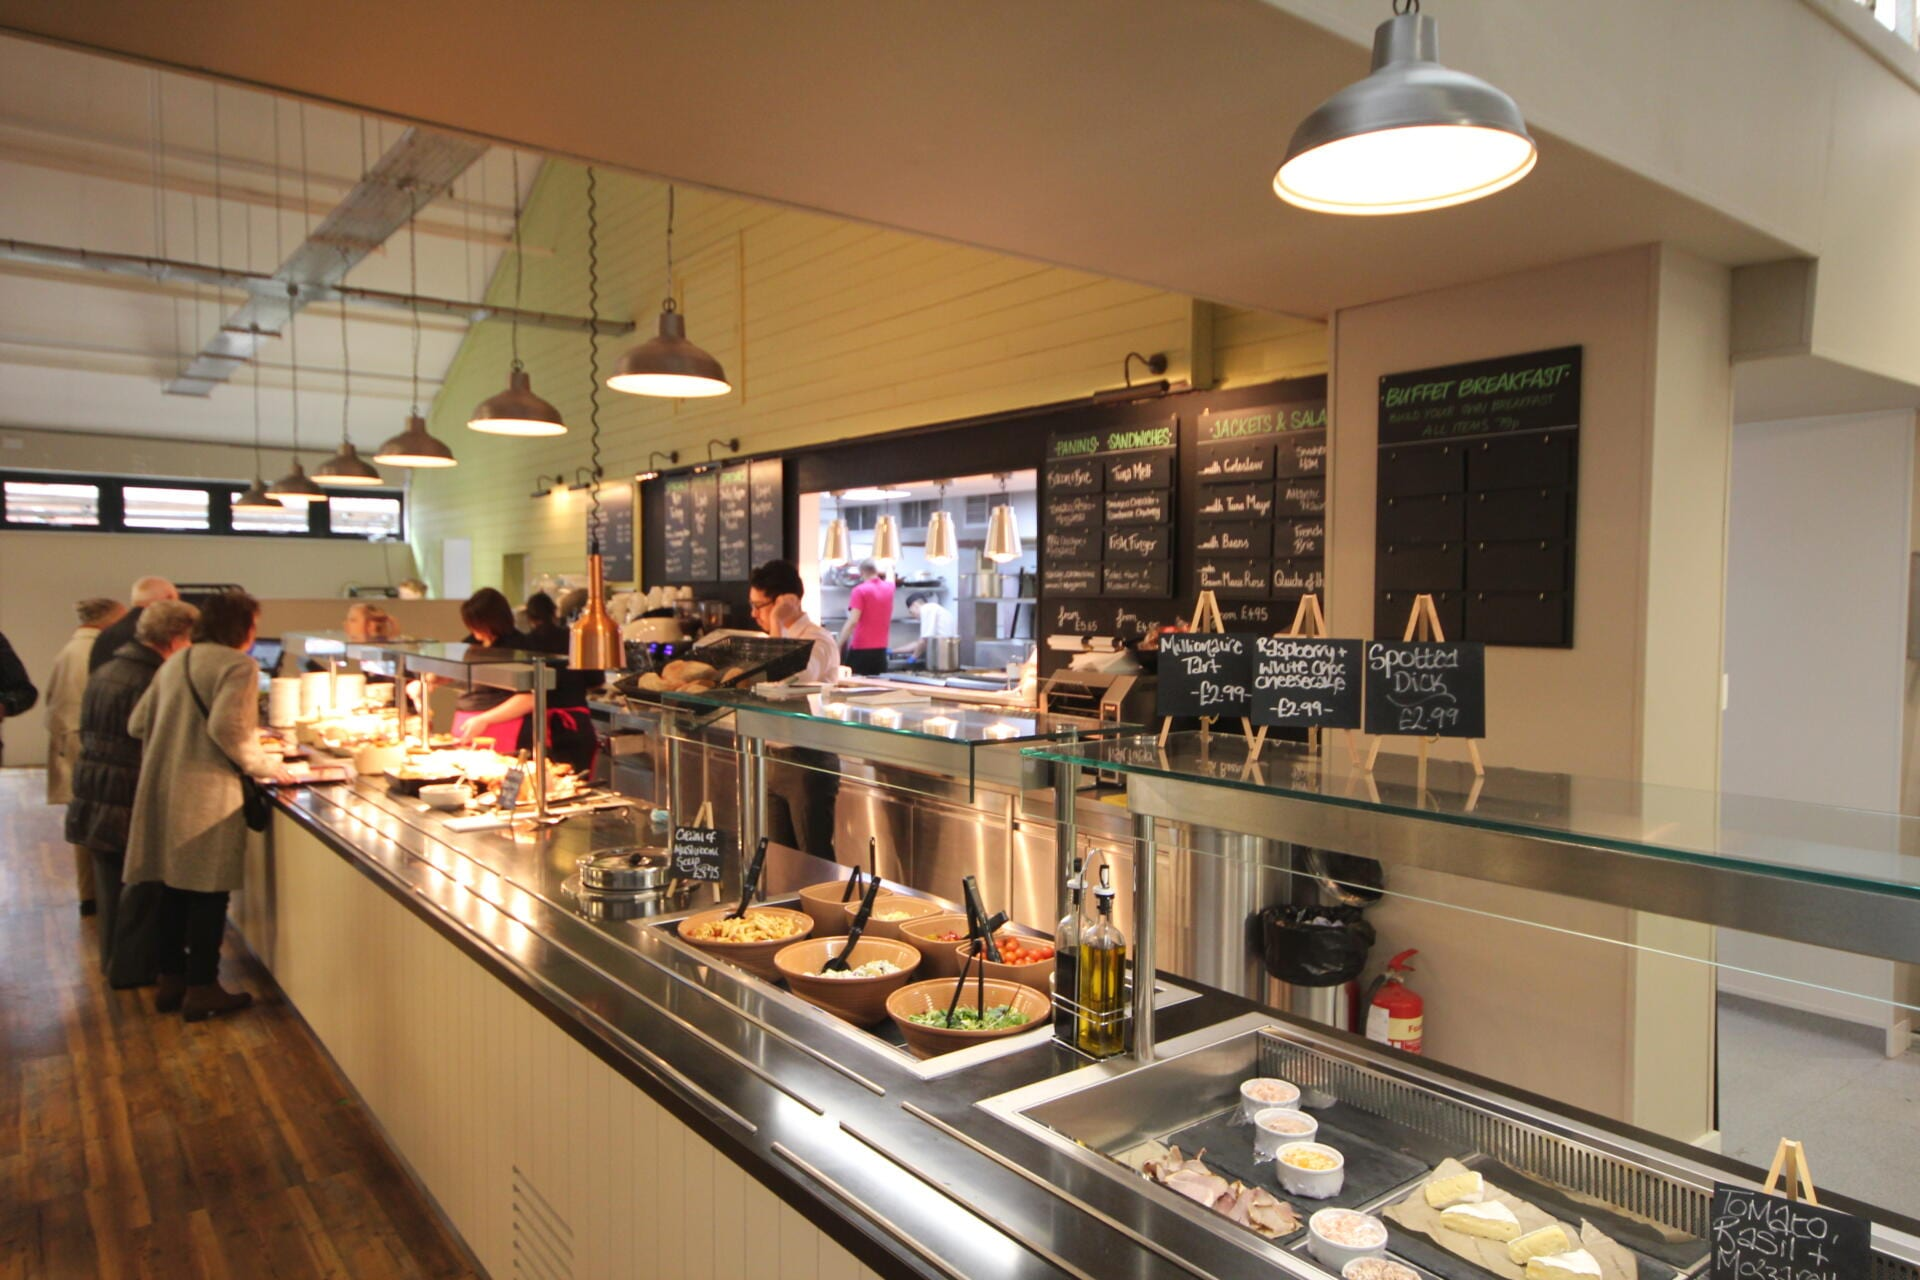 St Peters (drop in chilled deli, servery counter)